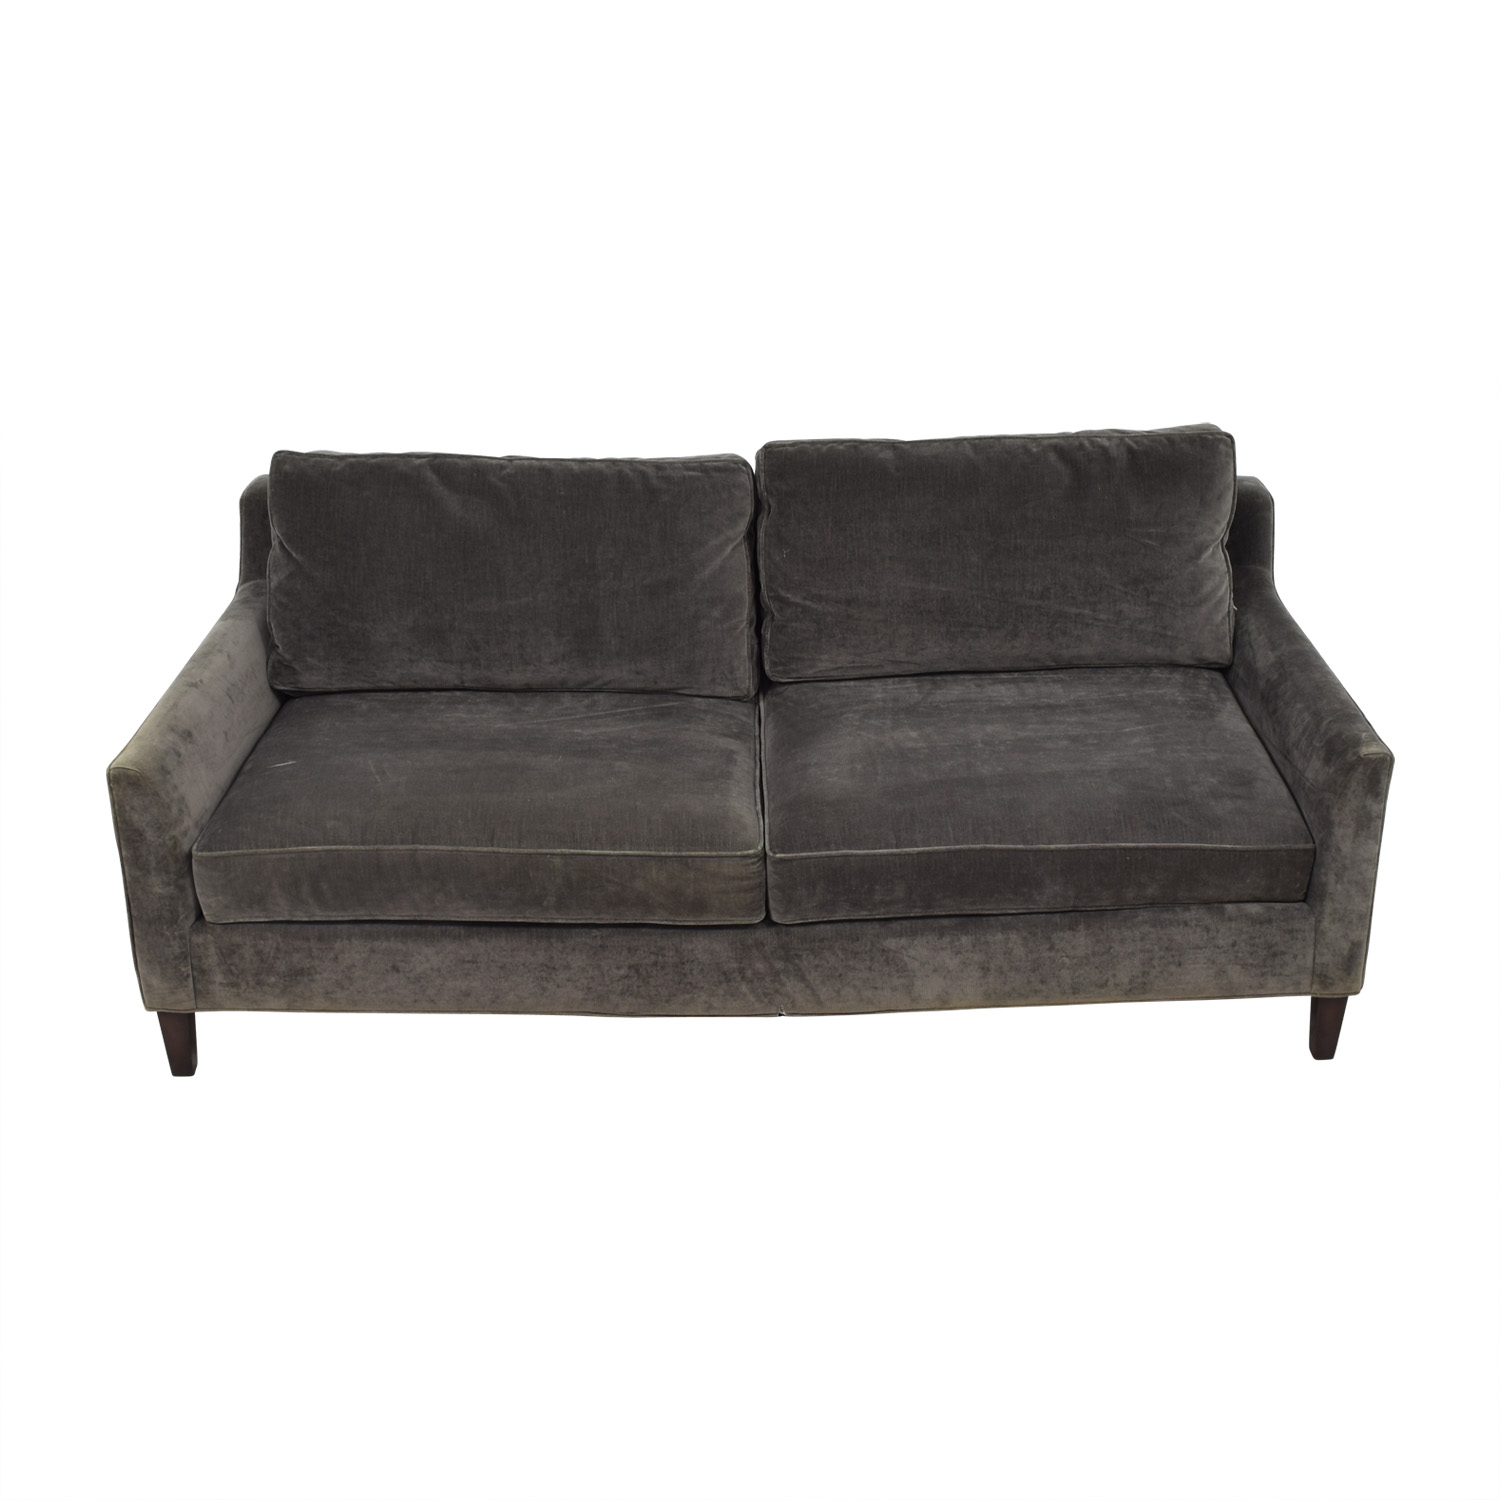 40% OFF Pottery Barn Pottery Barn Beverly Grey Sofa Sofas